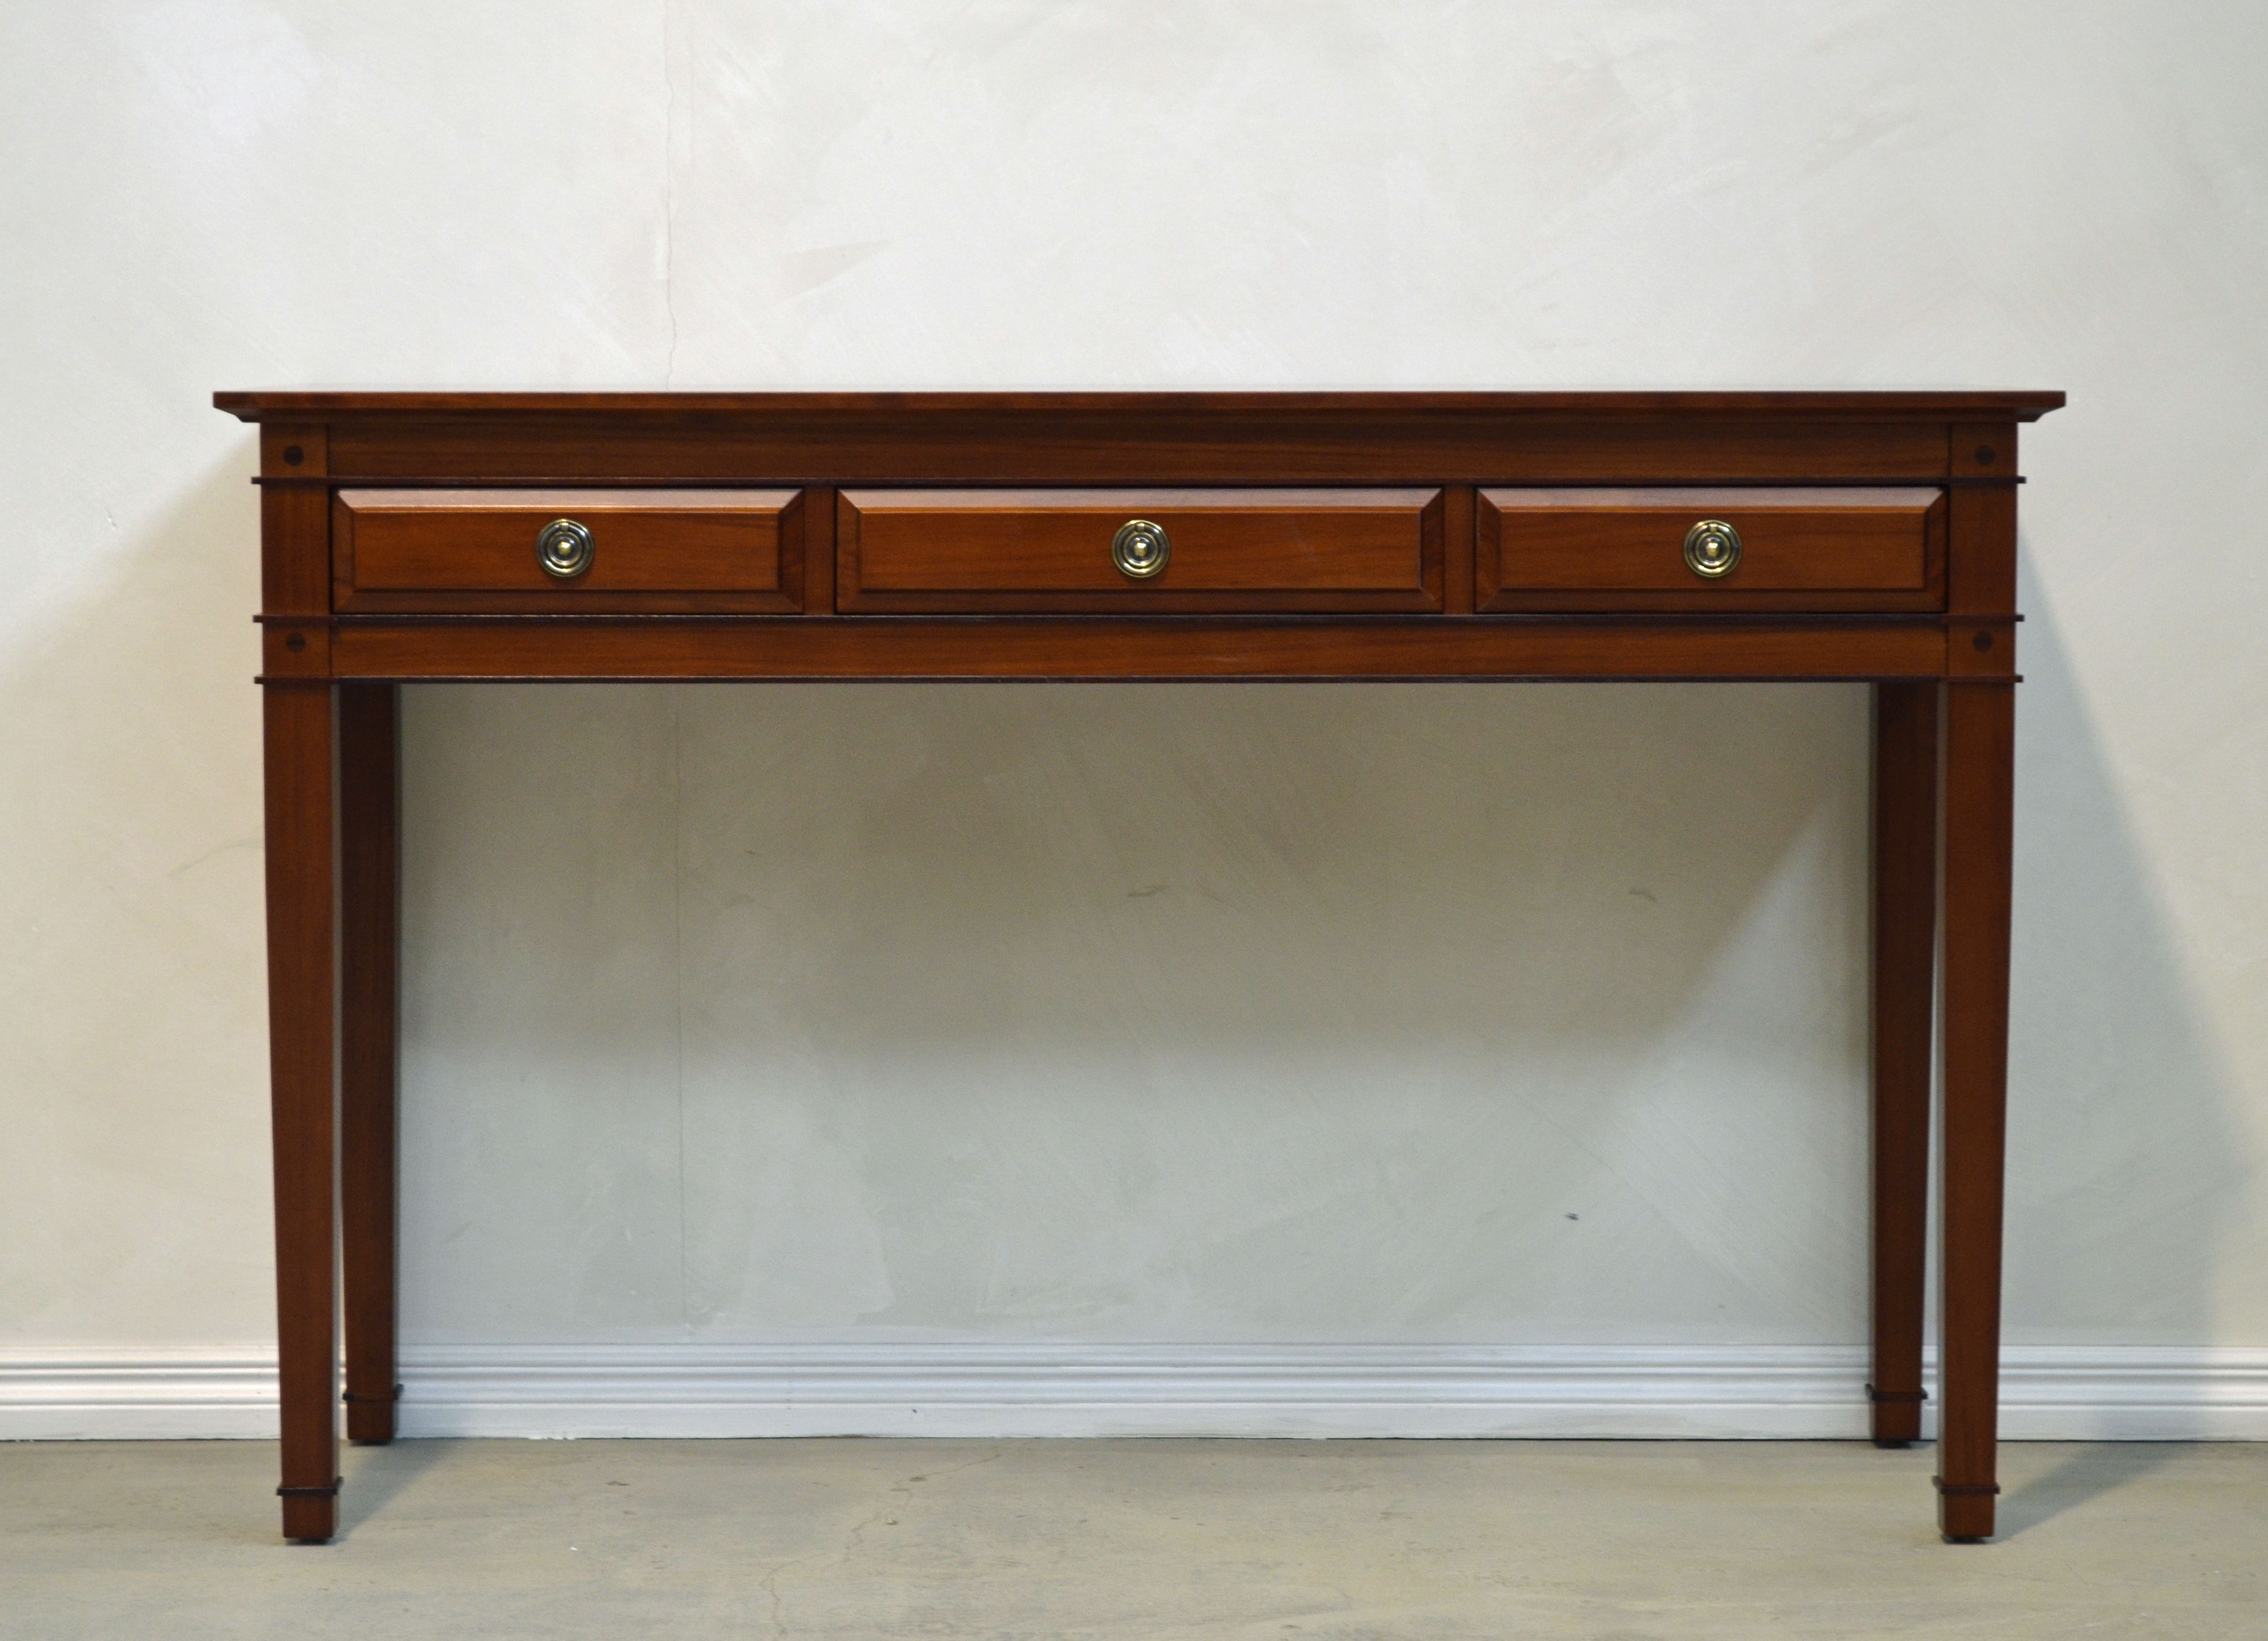 Beautiful Hall Table Credenza In NZ Kauri By Rose U0026 Heather Furniture Makers